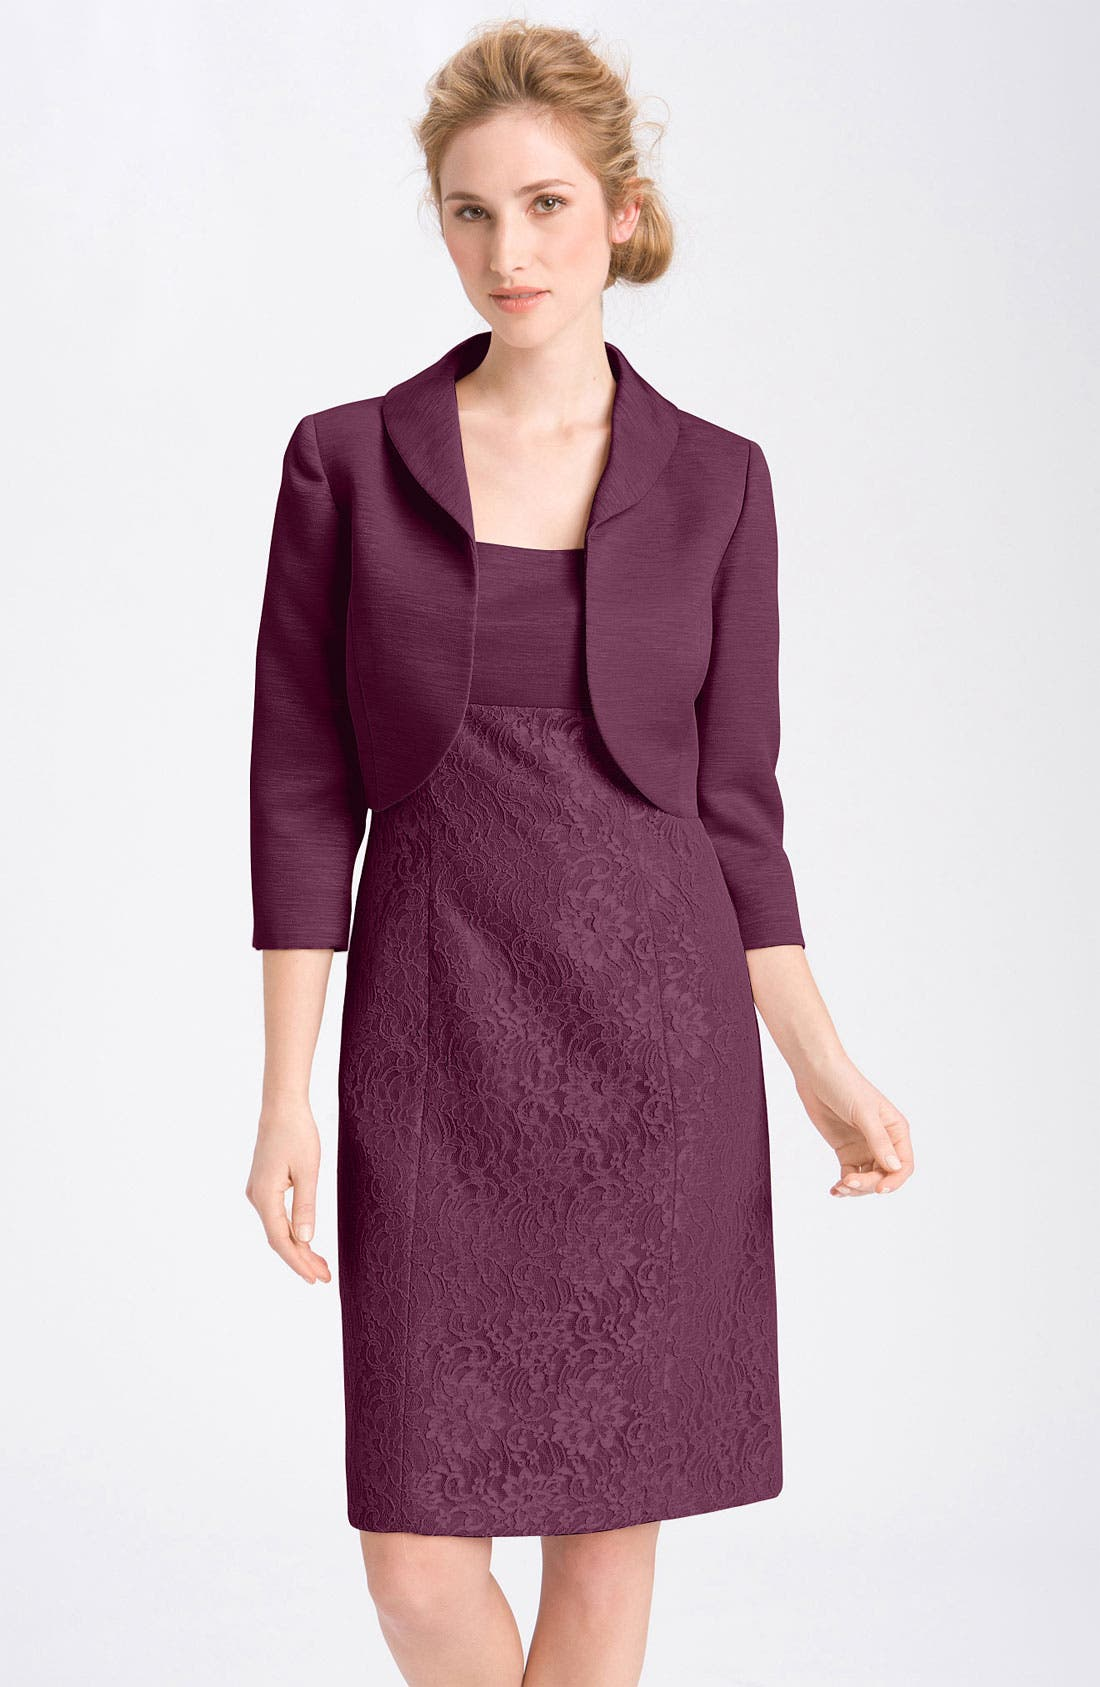 Alternate Image 1 Selected - Tahari Lace Sheath Dress & Jacket